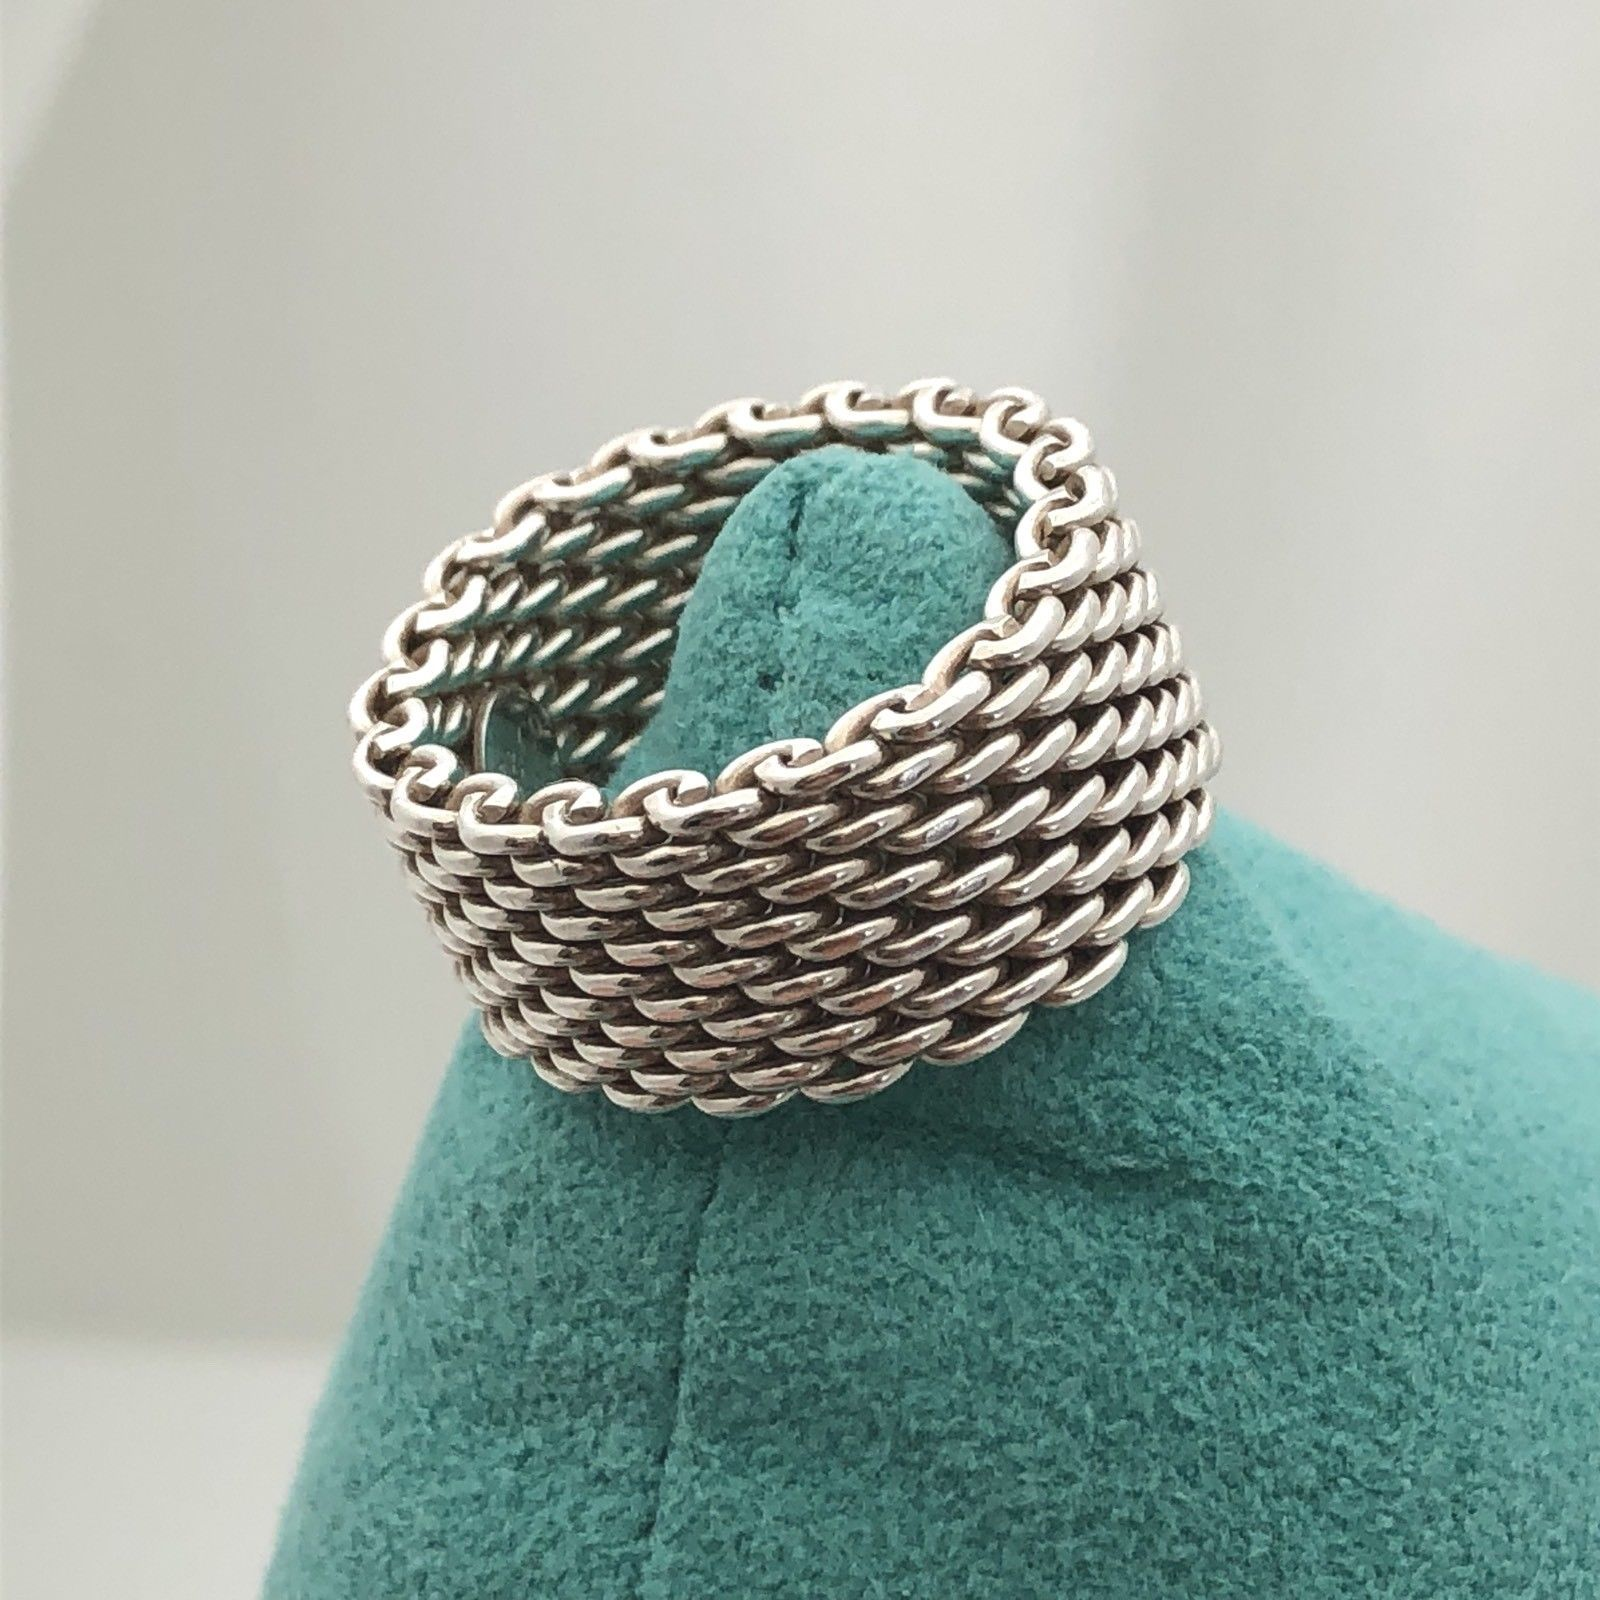 bea6233df 57. 57. Previous. Tiffany & Co Sterling Silver Somerset Mesh Weave Ring  Unisex Mens Size 7.5. Tiffany ...